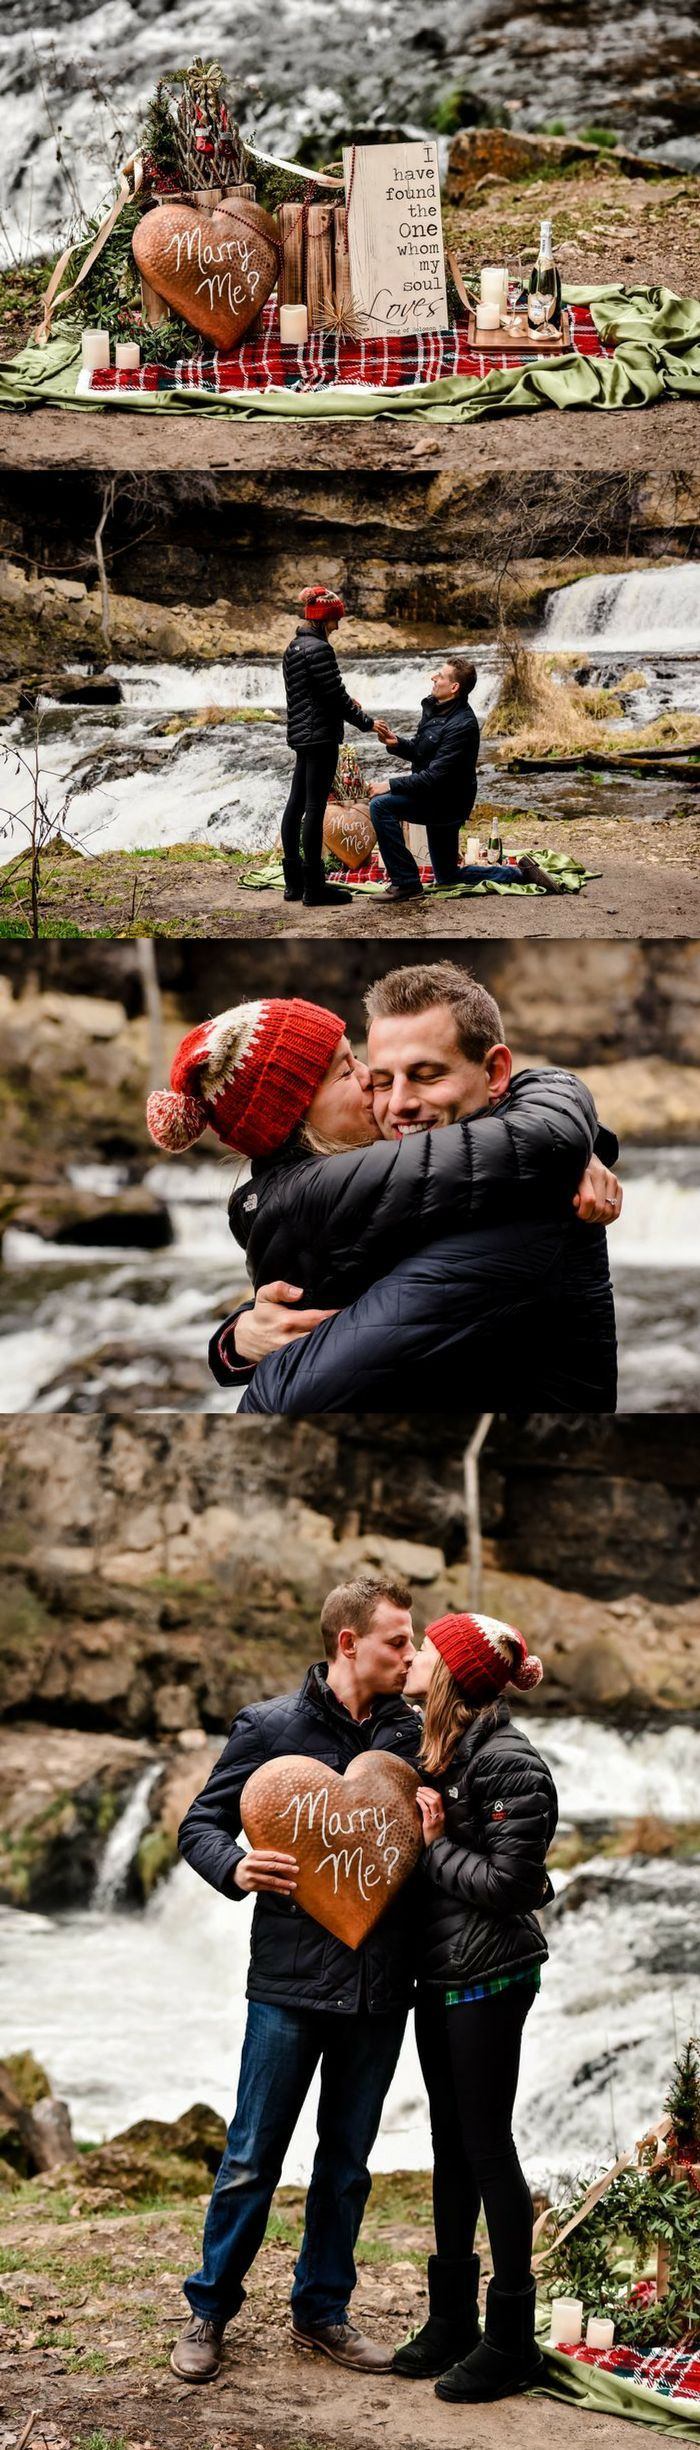 This waterfall proposal is literally a dream. He set up the most adorable spot to pop the question after their hike!